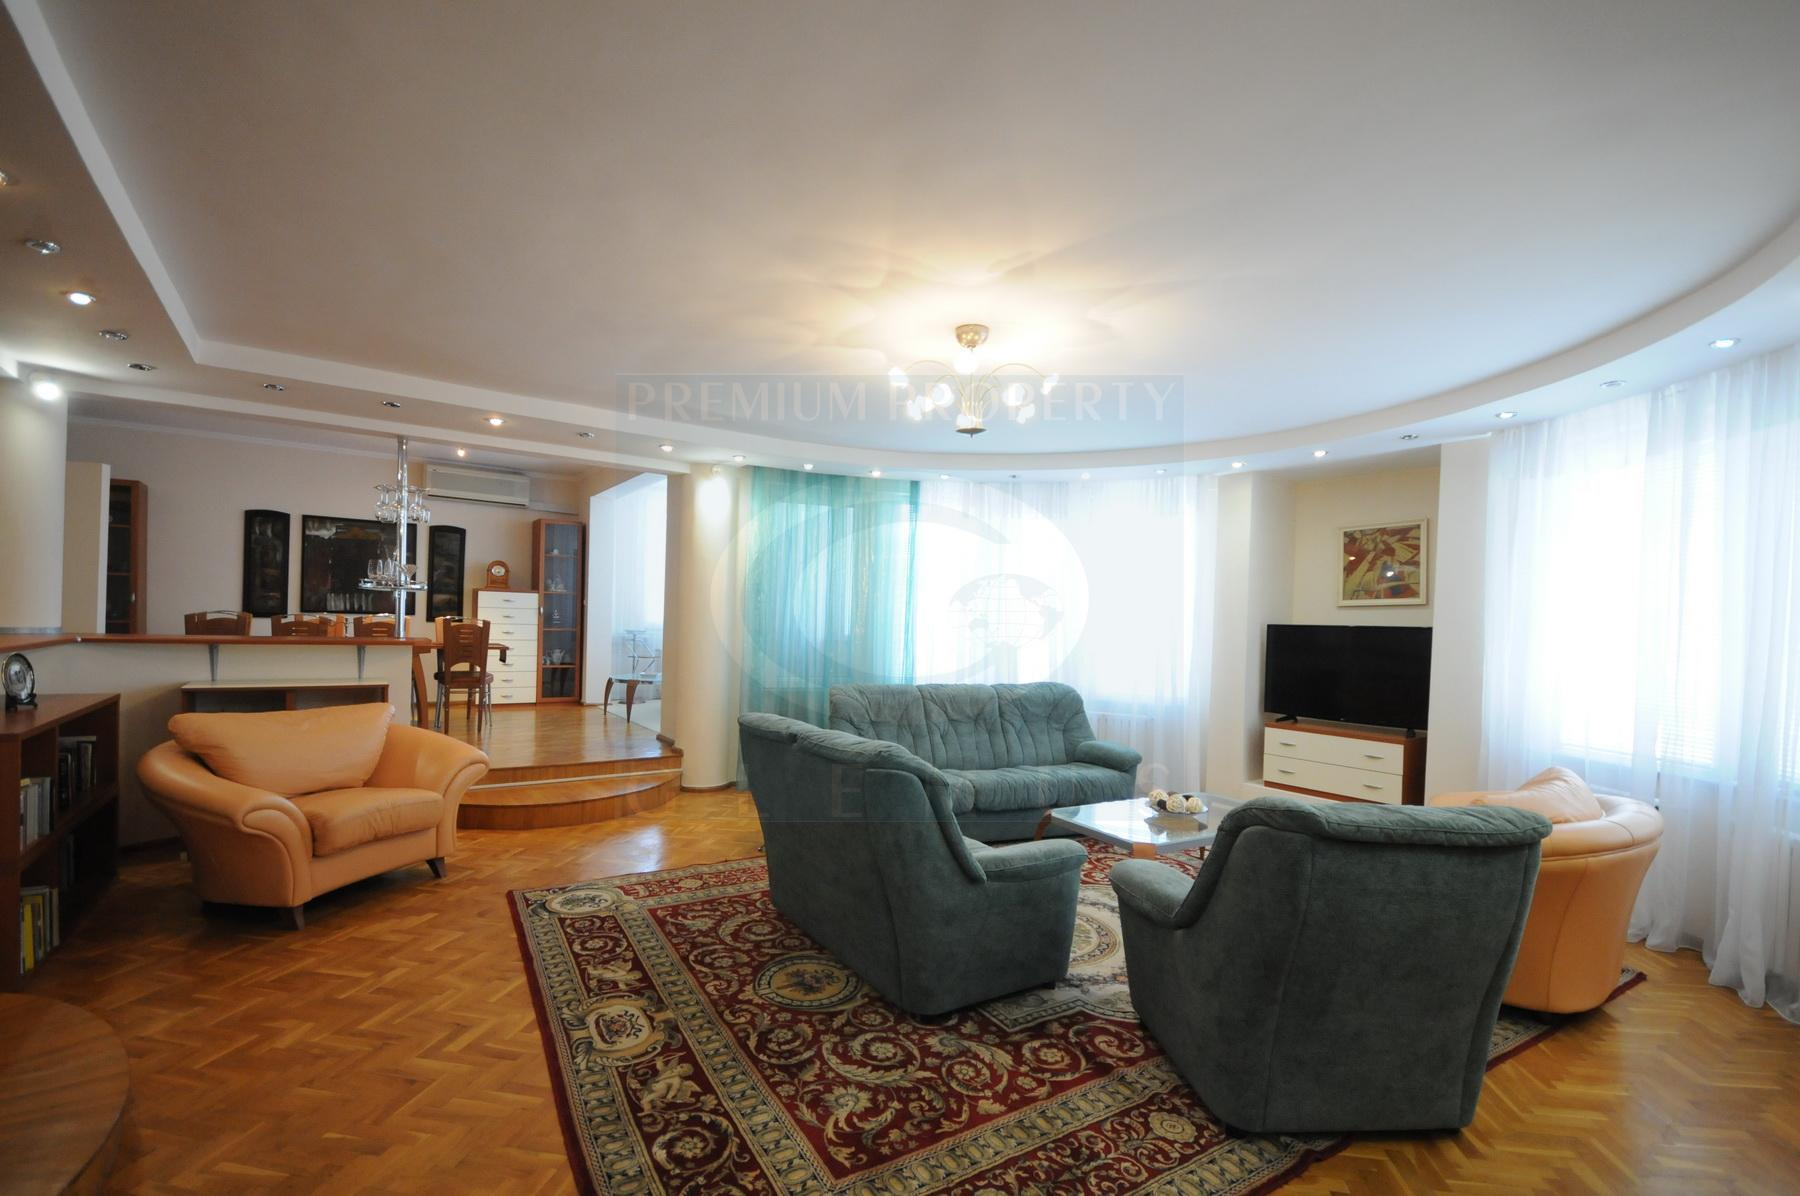 200 sq.m. five-room apartment with a very spacious living room.